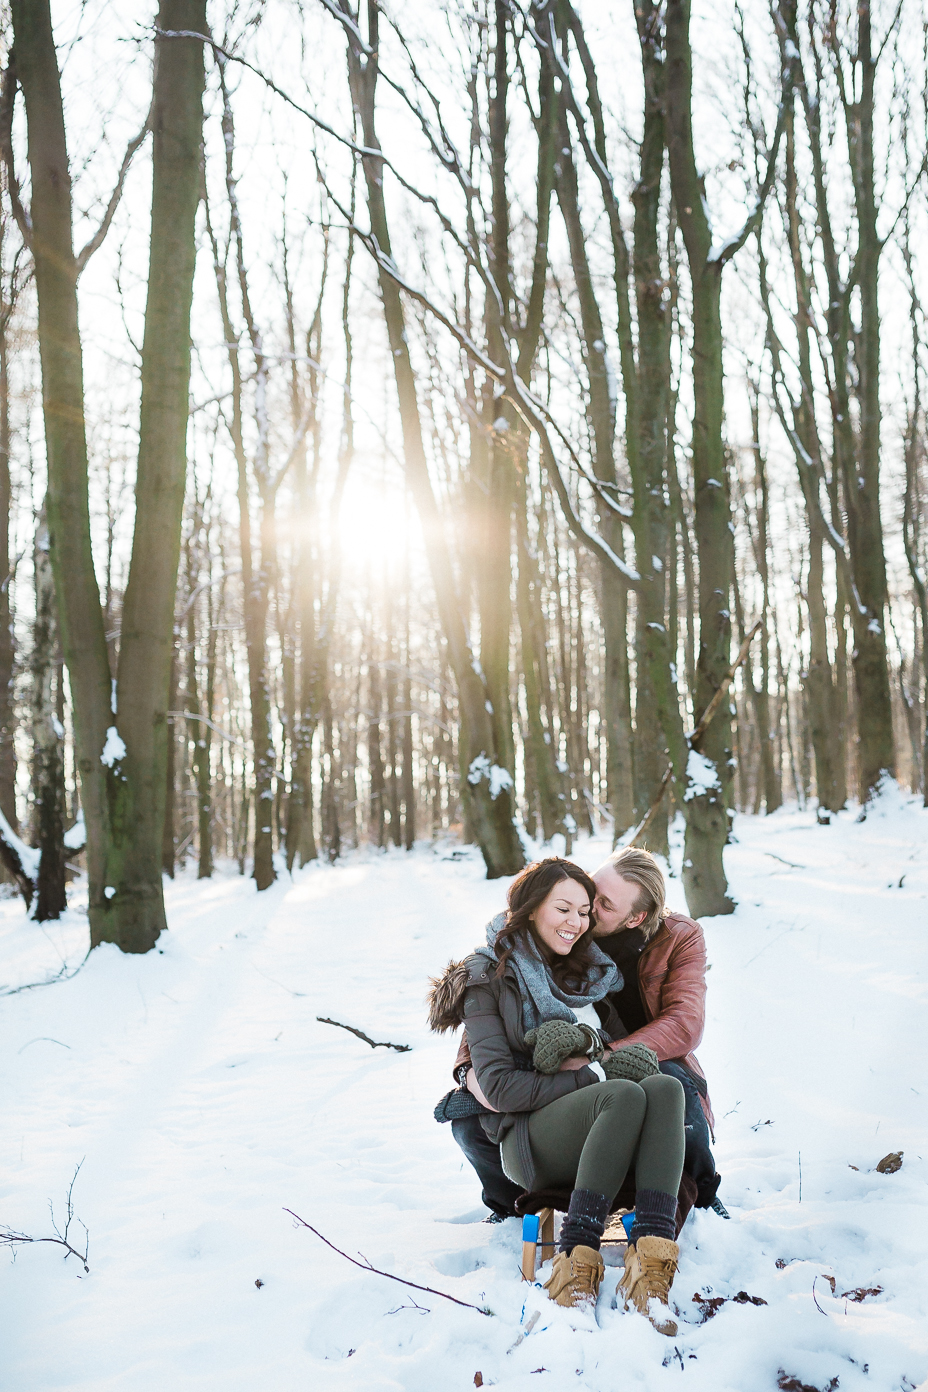 Liebesshooting im Winter ... Engagementshoot bei Kassel Wintershooting Schnee Pärchenshooting Coupleshooting Engagementshooting Kassel